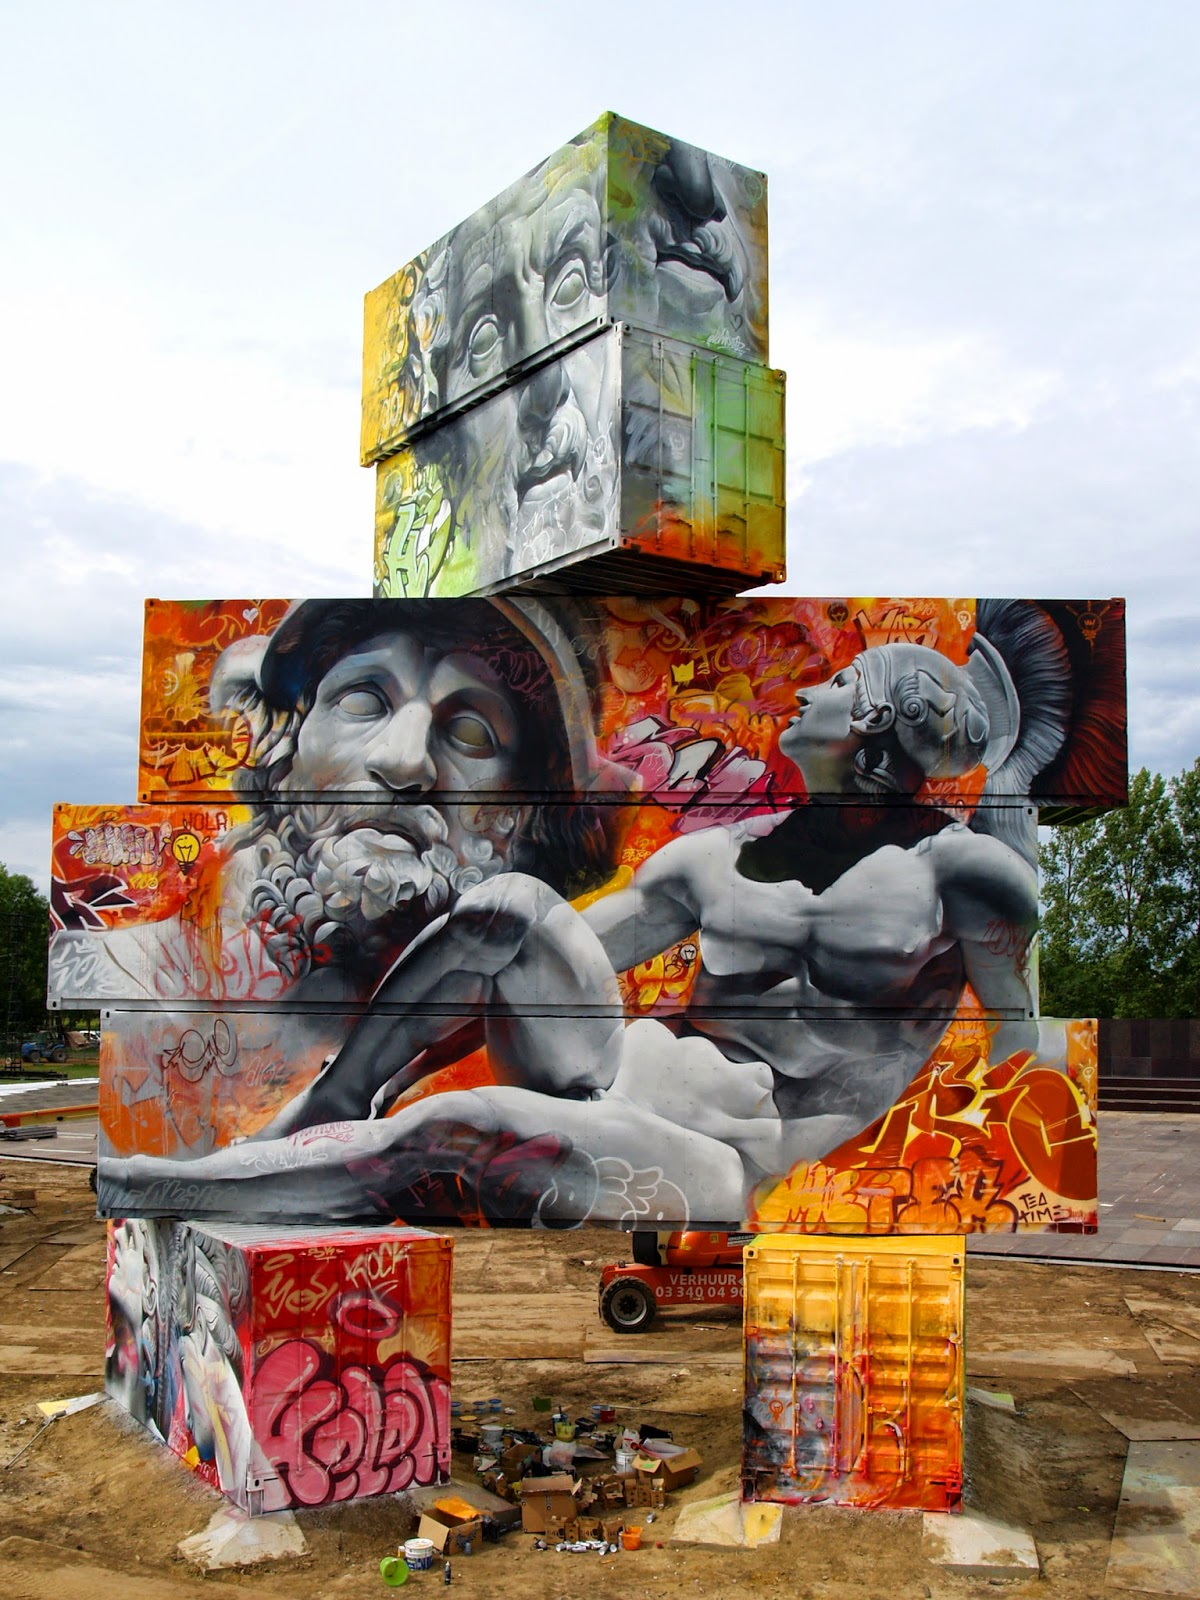 PichiAvo are now in Belgium where they were invited to paint for the North West Walls Street Art Festival in Werchter.